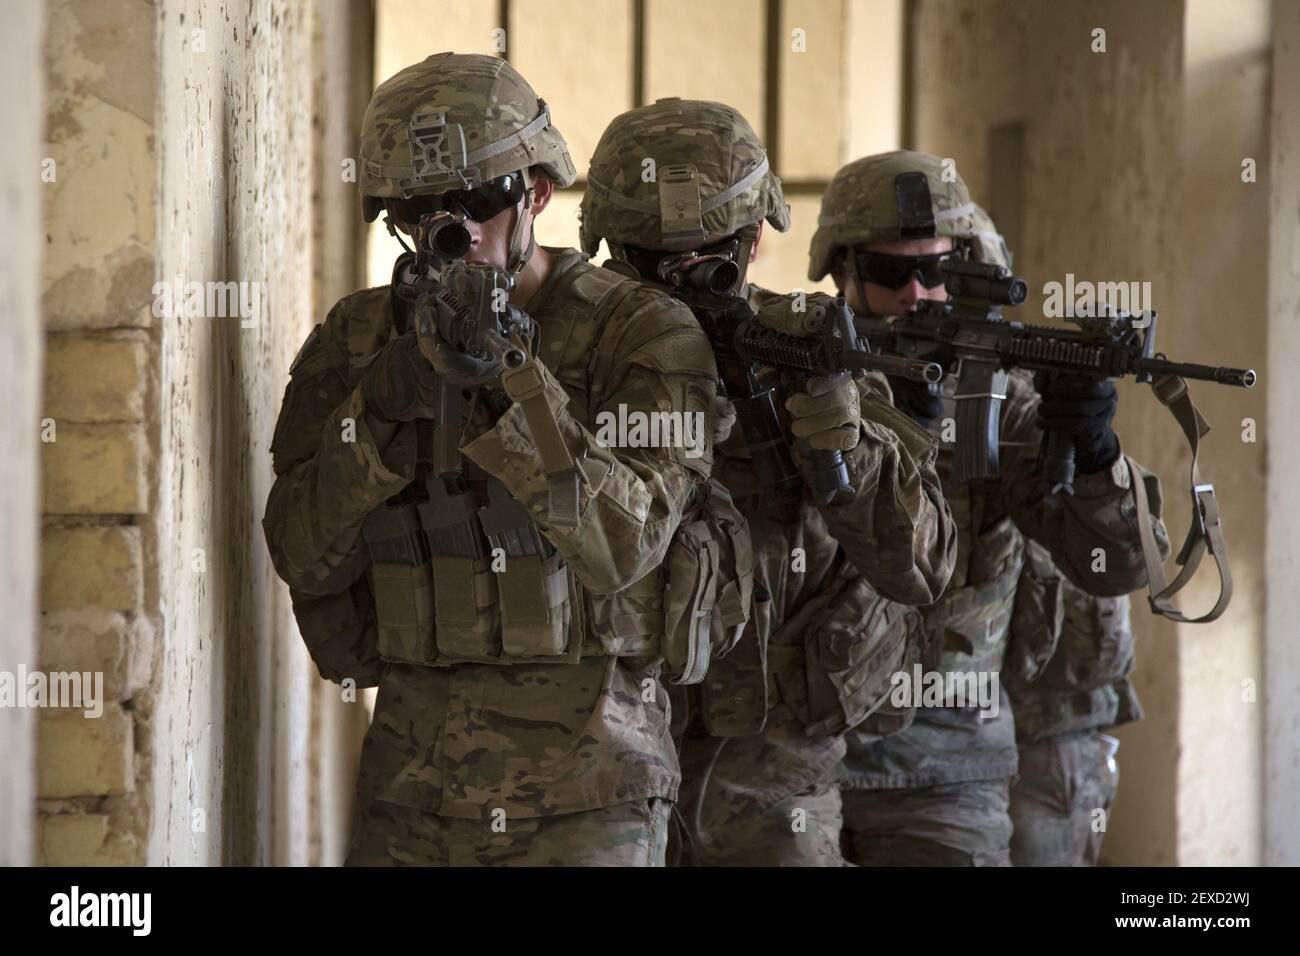 U.S. Army paratroopers assigned to Bravo Troop, 5th Squadron, 73rd Cavalry Regiment, 3rd Brigade, 82nd Airborne Division, maneuver through a hallway as part of squad level training at Camp Taji, Iraq, Aug. 3, 2015. Coalition forces routinely practice what they plan to teach Iraqi soldiers prior to each round of instruction. Training at the building partner capacity sites is an integral part of Combined Joint Task Force – Operation Inherent Resolve's multinational effort to train Iraqi security force personnel to defeat the Islamic State of Iraq and the Levant. A coalition of regional and i Stock Photo